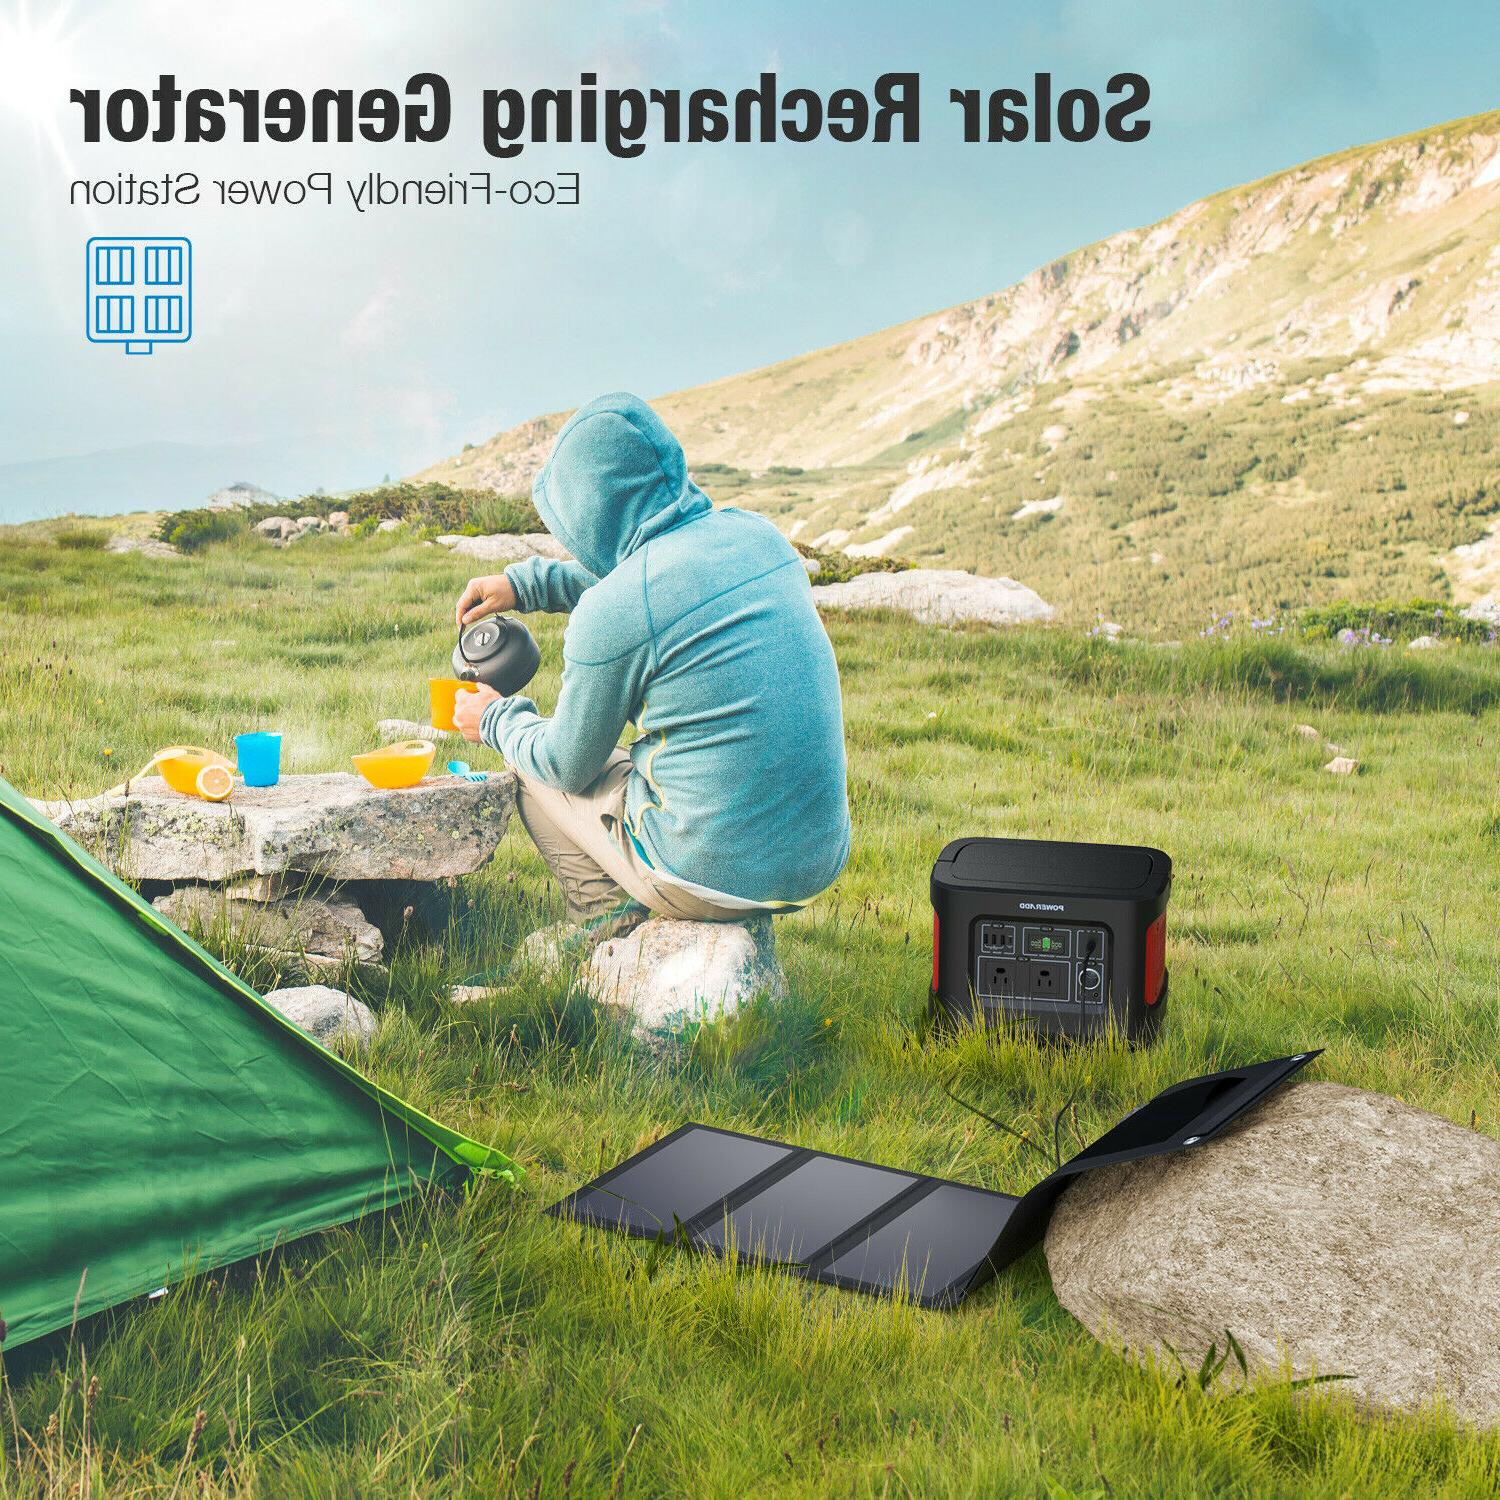 280Wh/78000mAh Delivery Generator for Camping Travel/CPAP